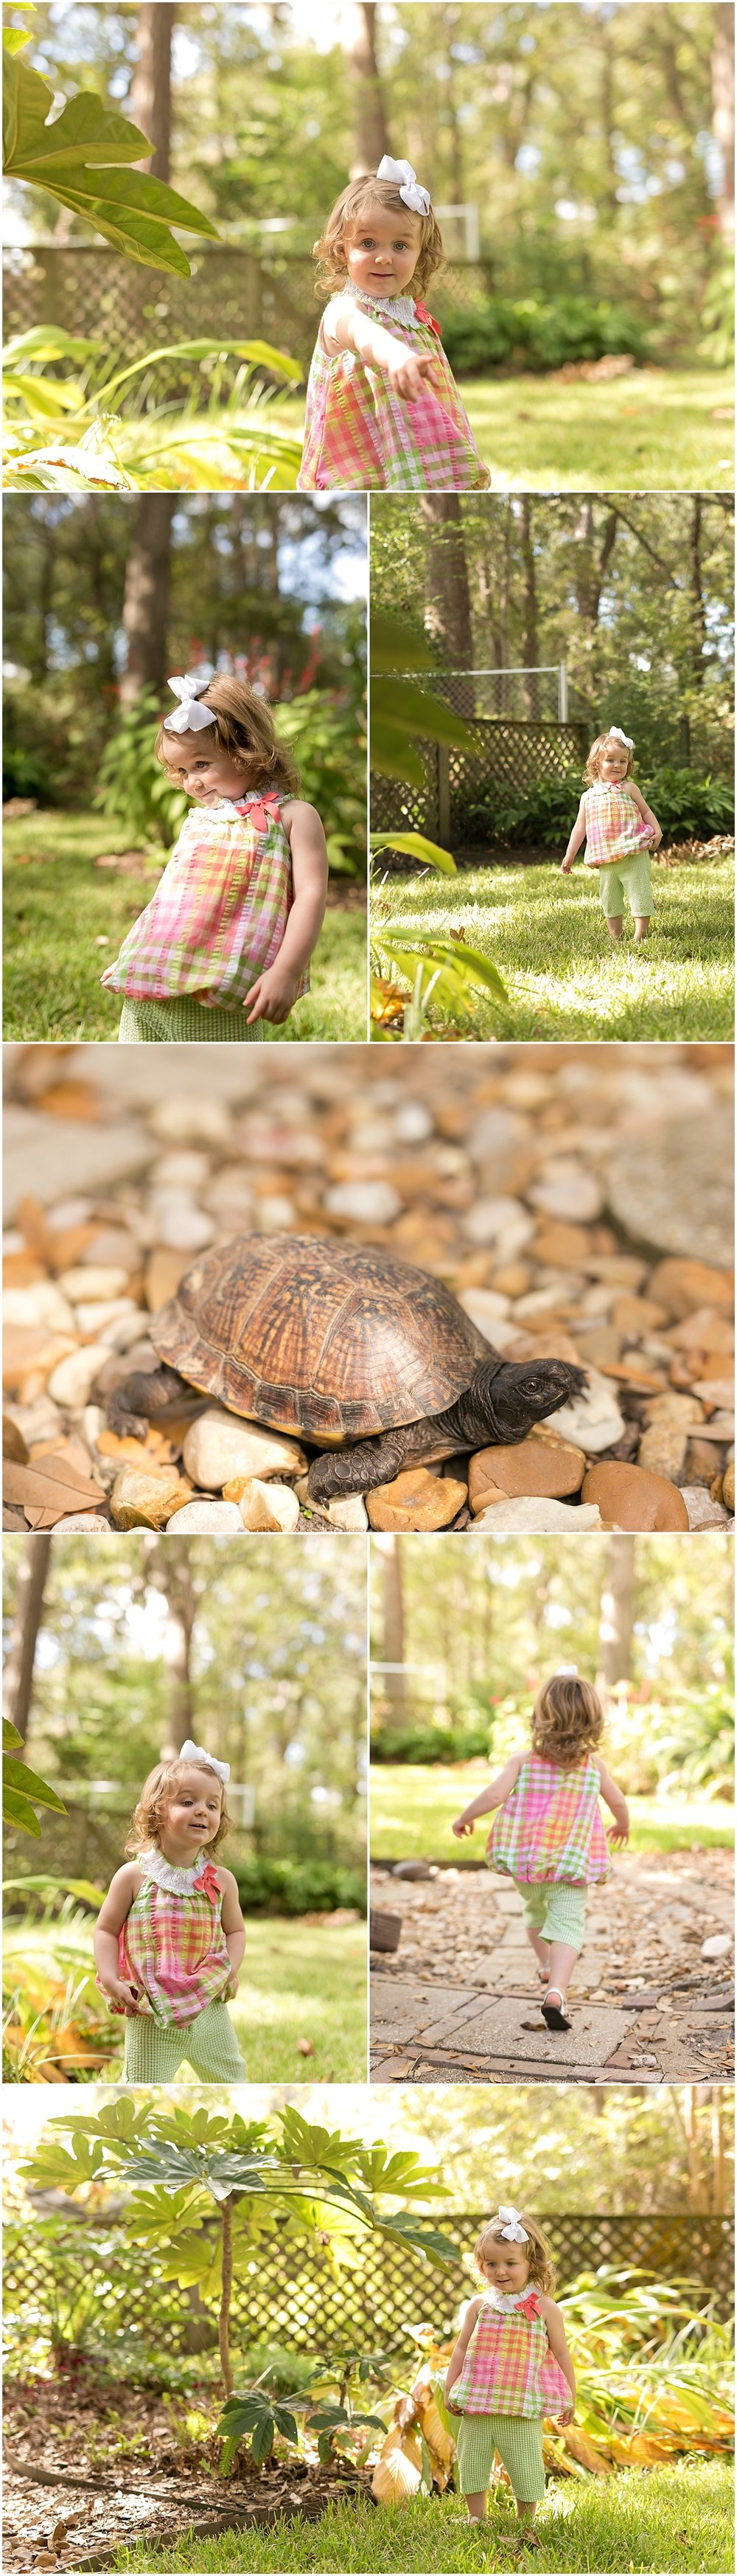 little girl with turtle in backyard